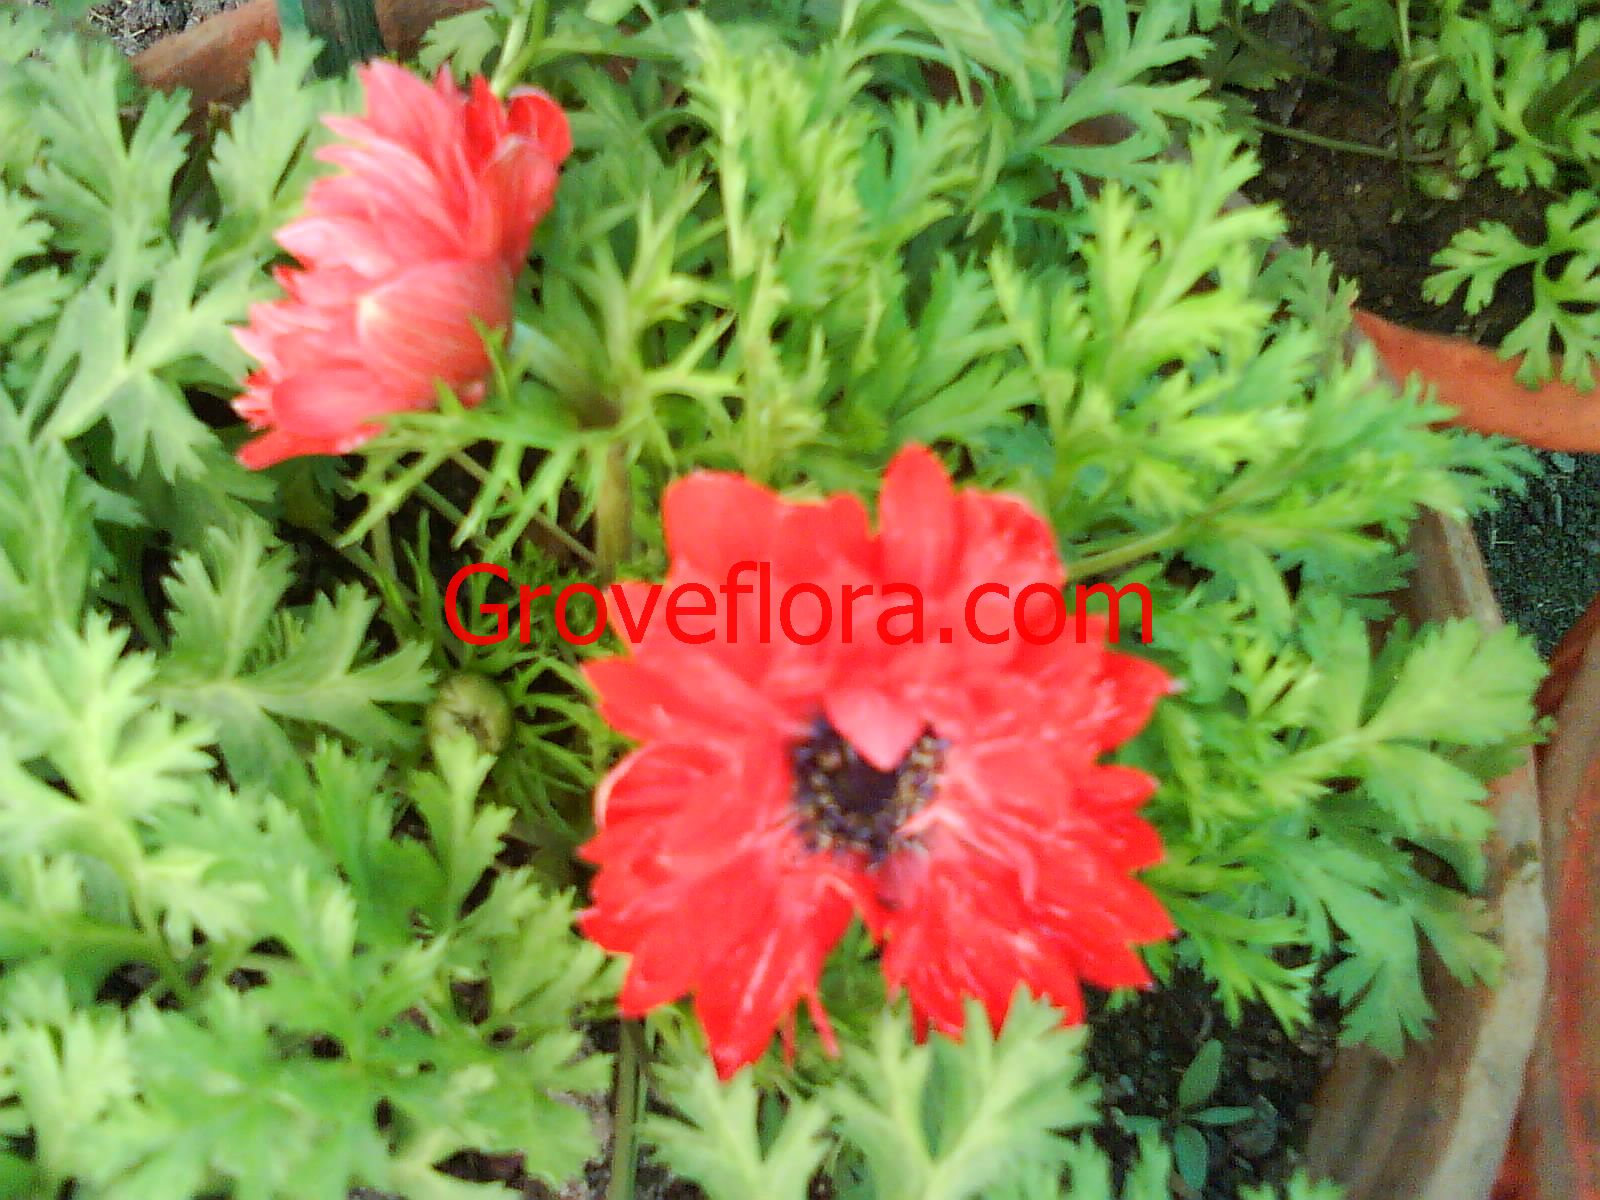 Buy flower bulbs online india groveflora deals and offers on flower bulbs india izmirmasajfo